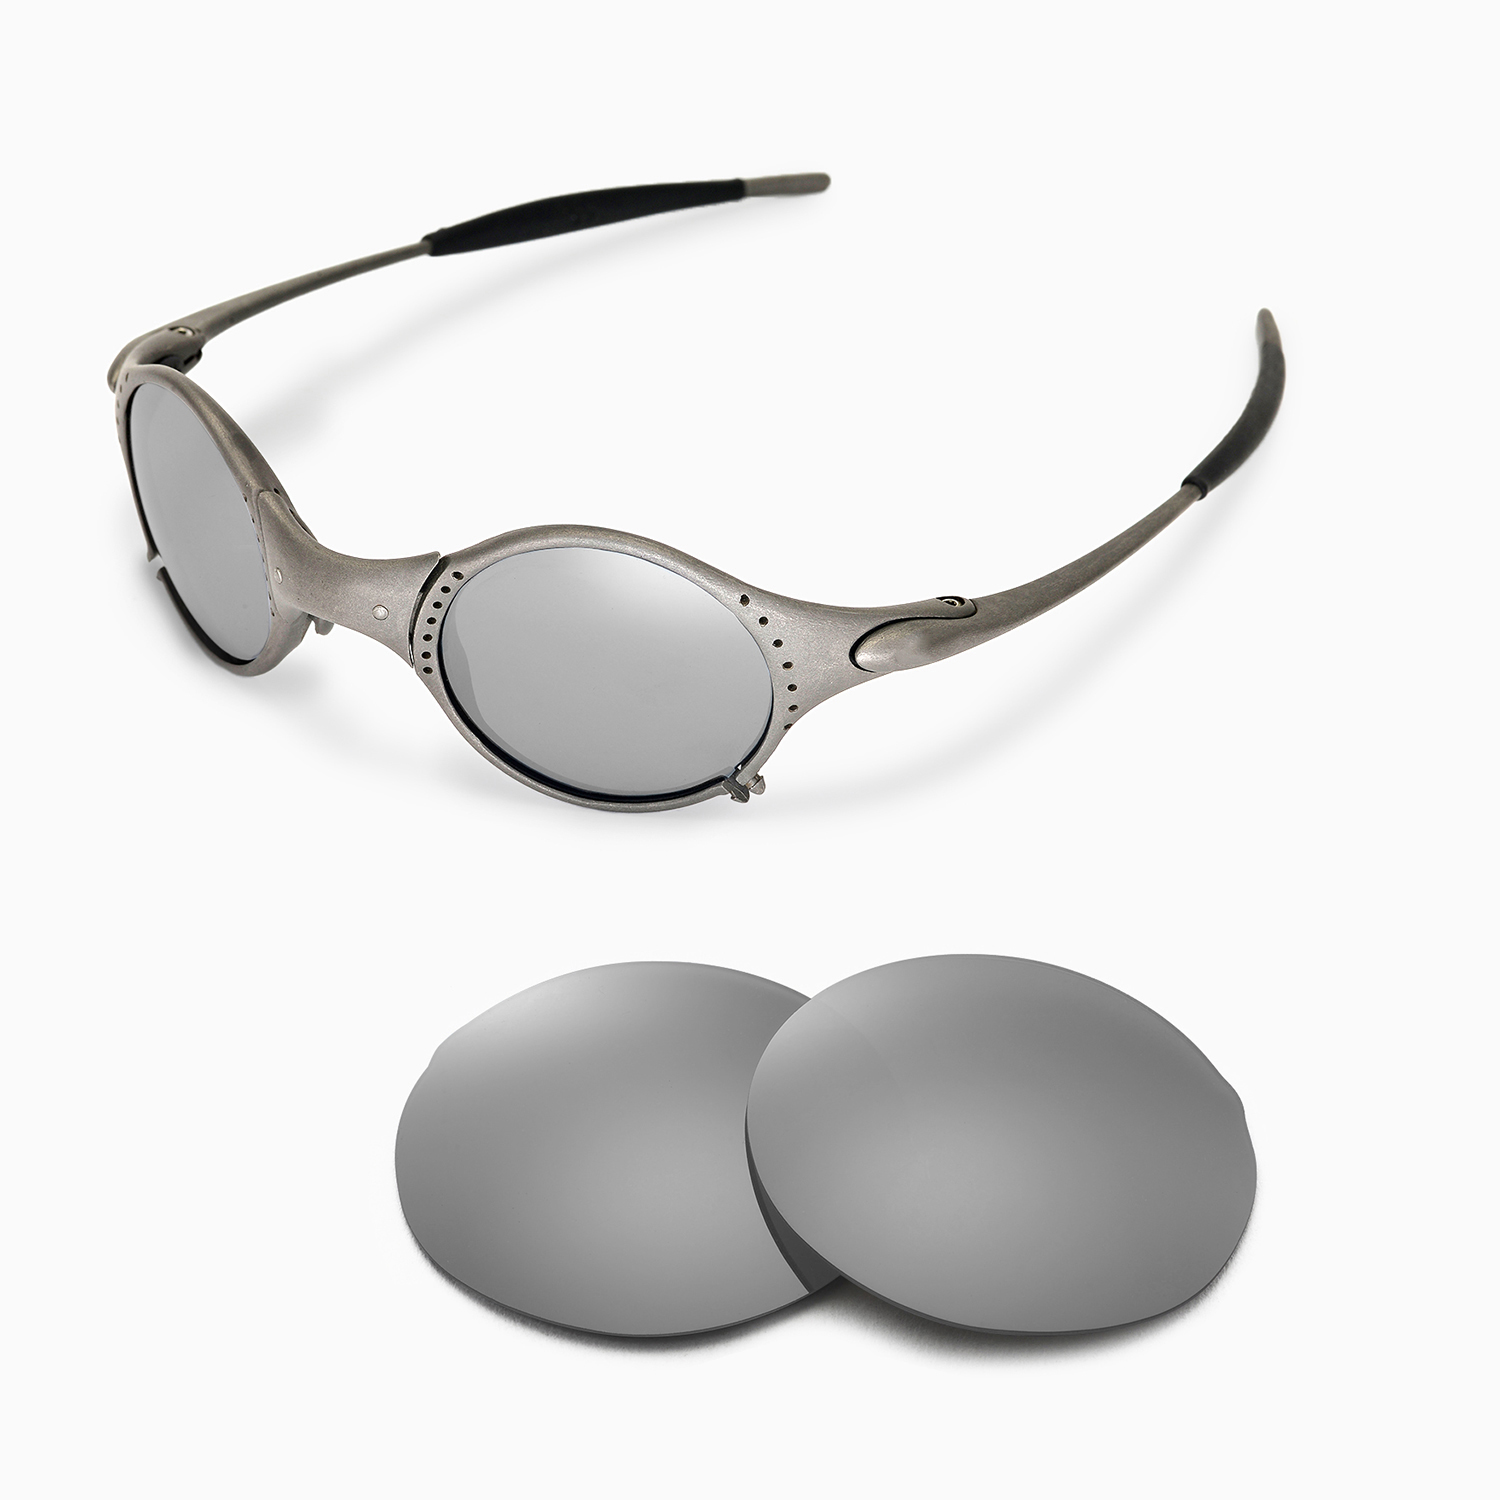 d8d7fc860f Details about New Walleva Polarized Titanium Replacement Lenses For Oakley  Mars Sunglasses